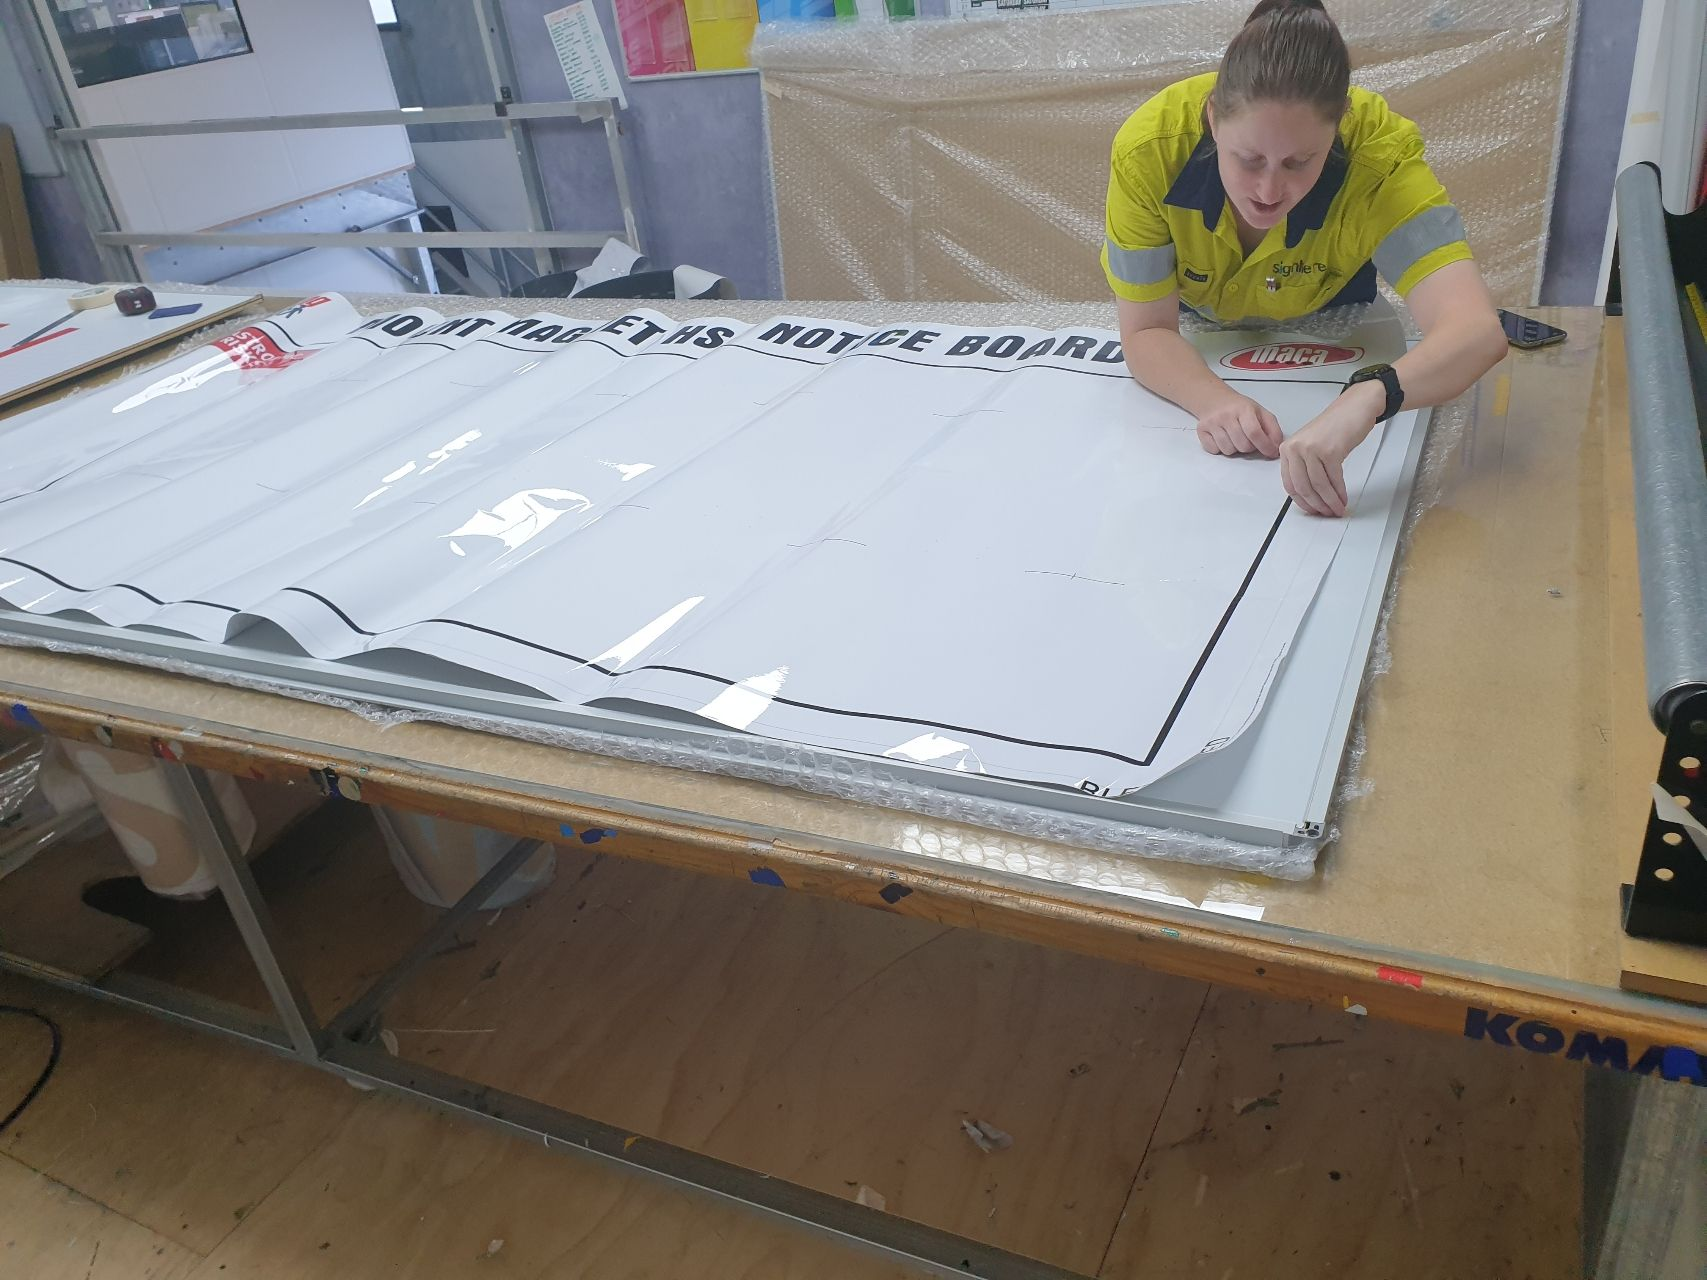 Applying the decals to a new whiteboard